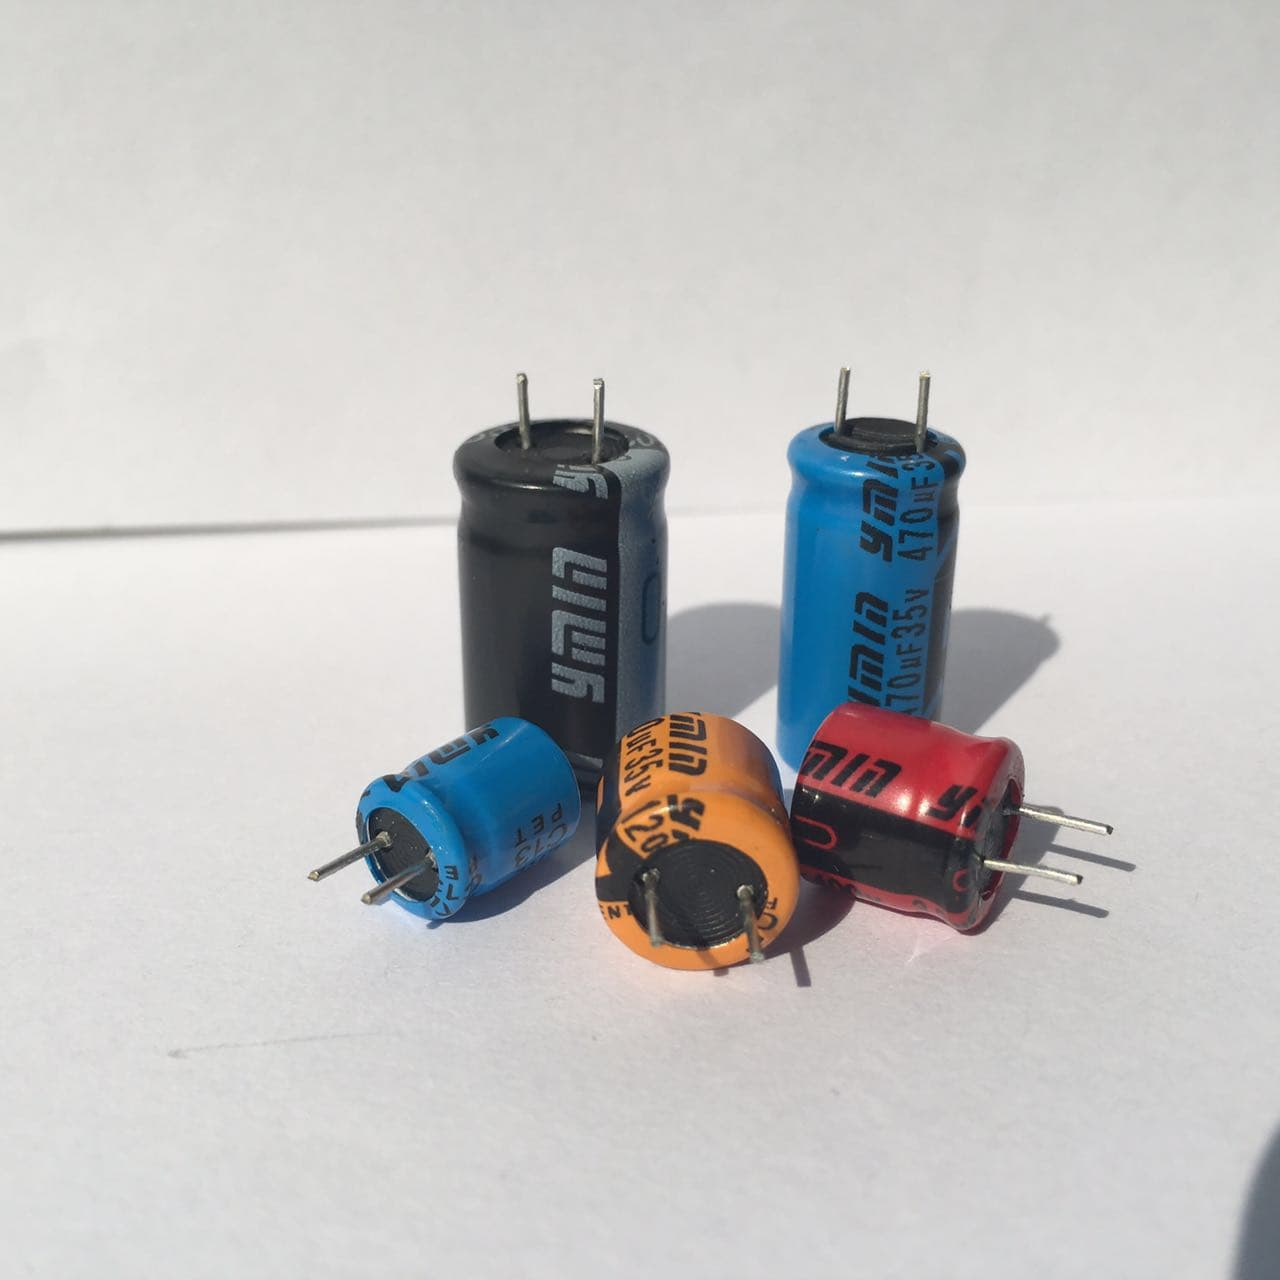 Electrical Equipment Components Telecomspassive Capacitor Led Circuit Product Thumnail Image